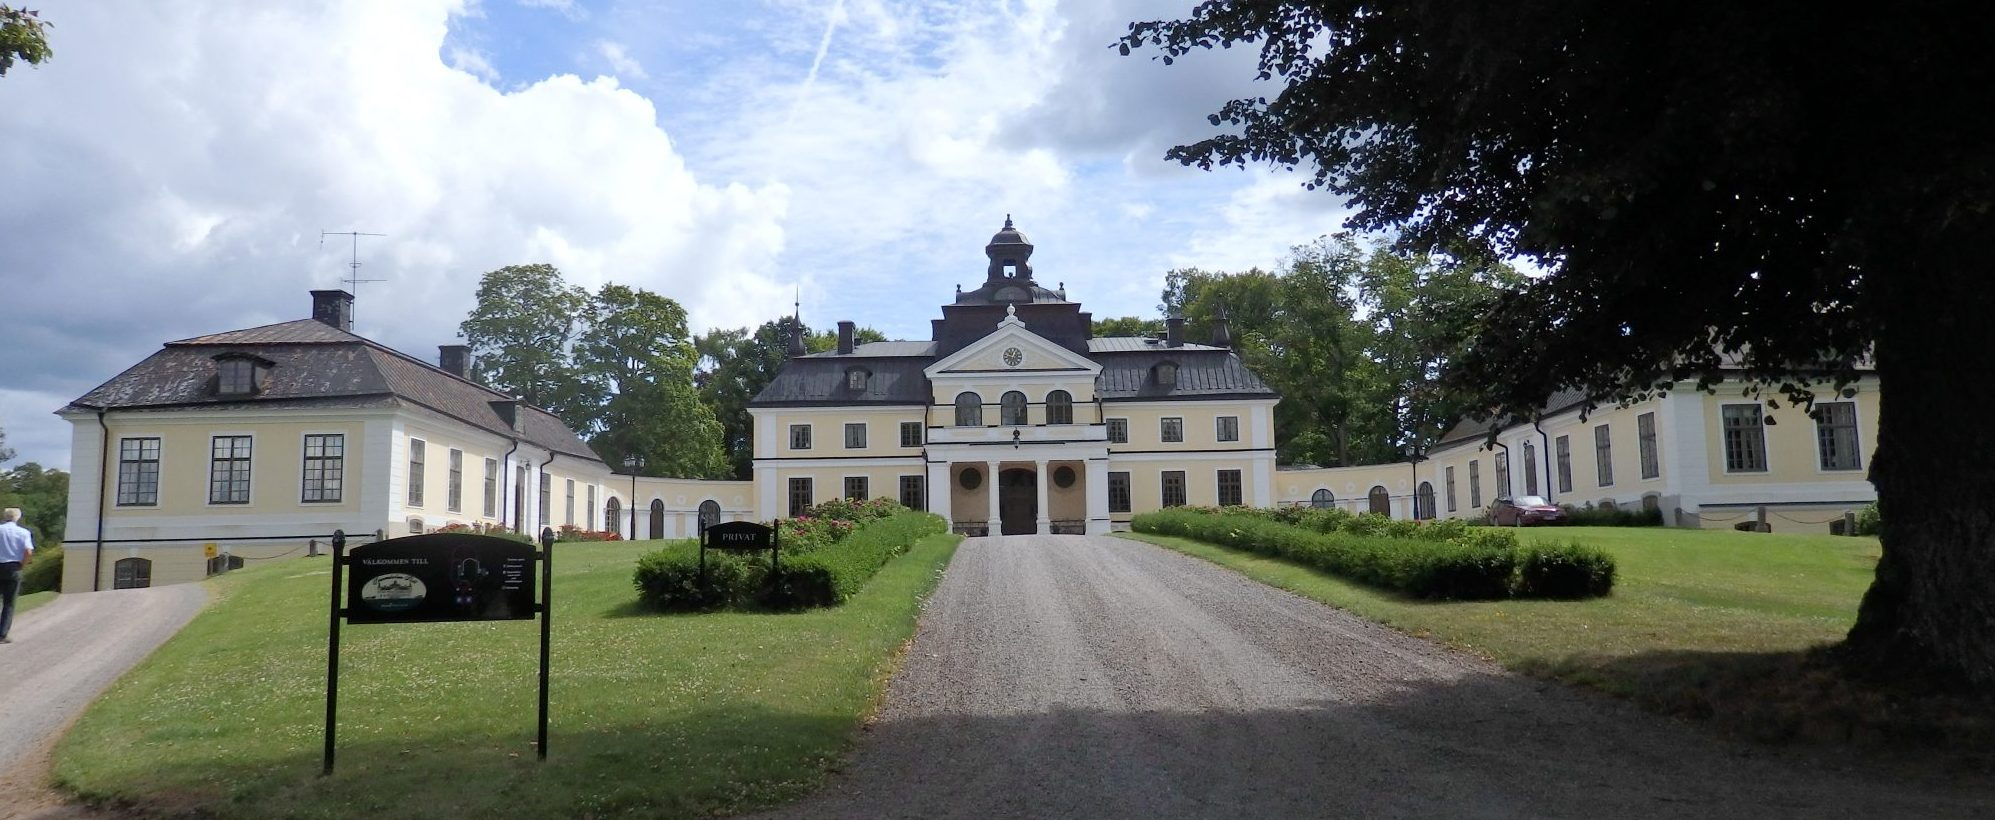 front view of Sparreholms manor, Sormland, Sweden